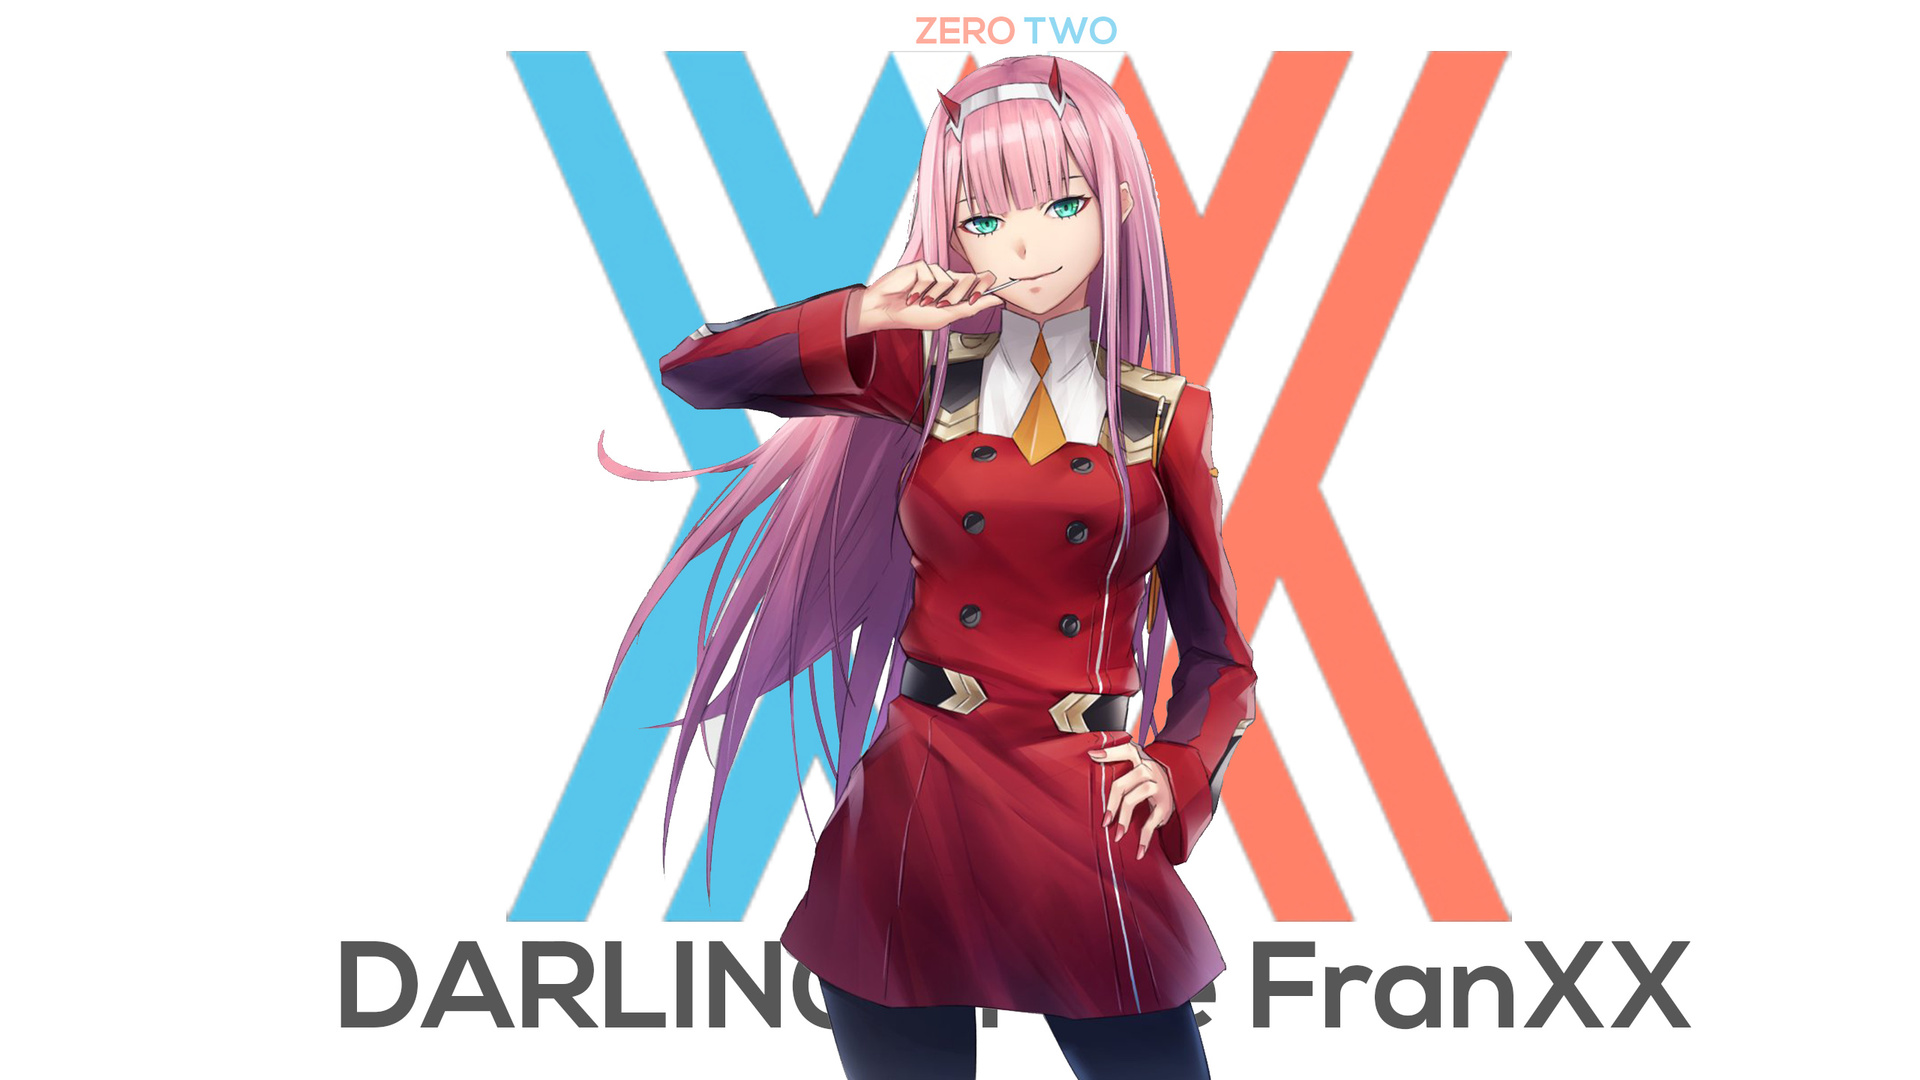 002, zero two, darling in the franxx